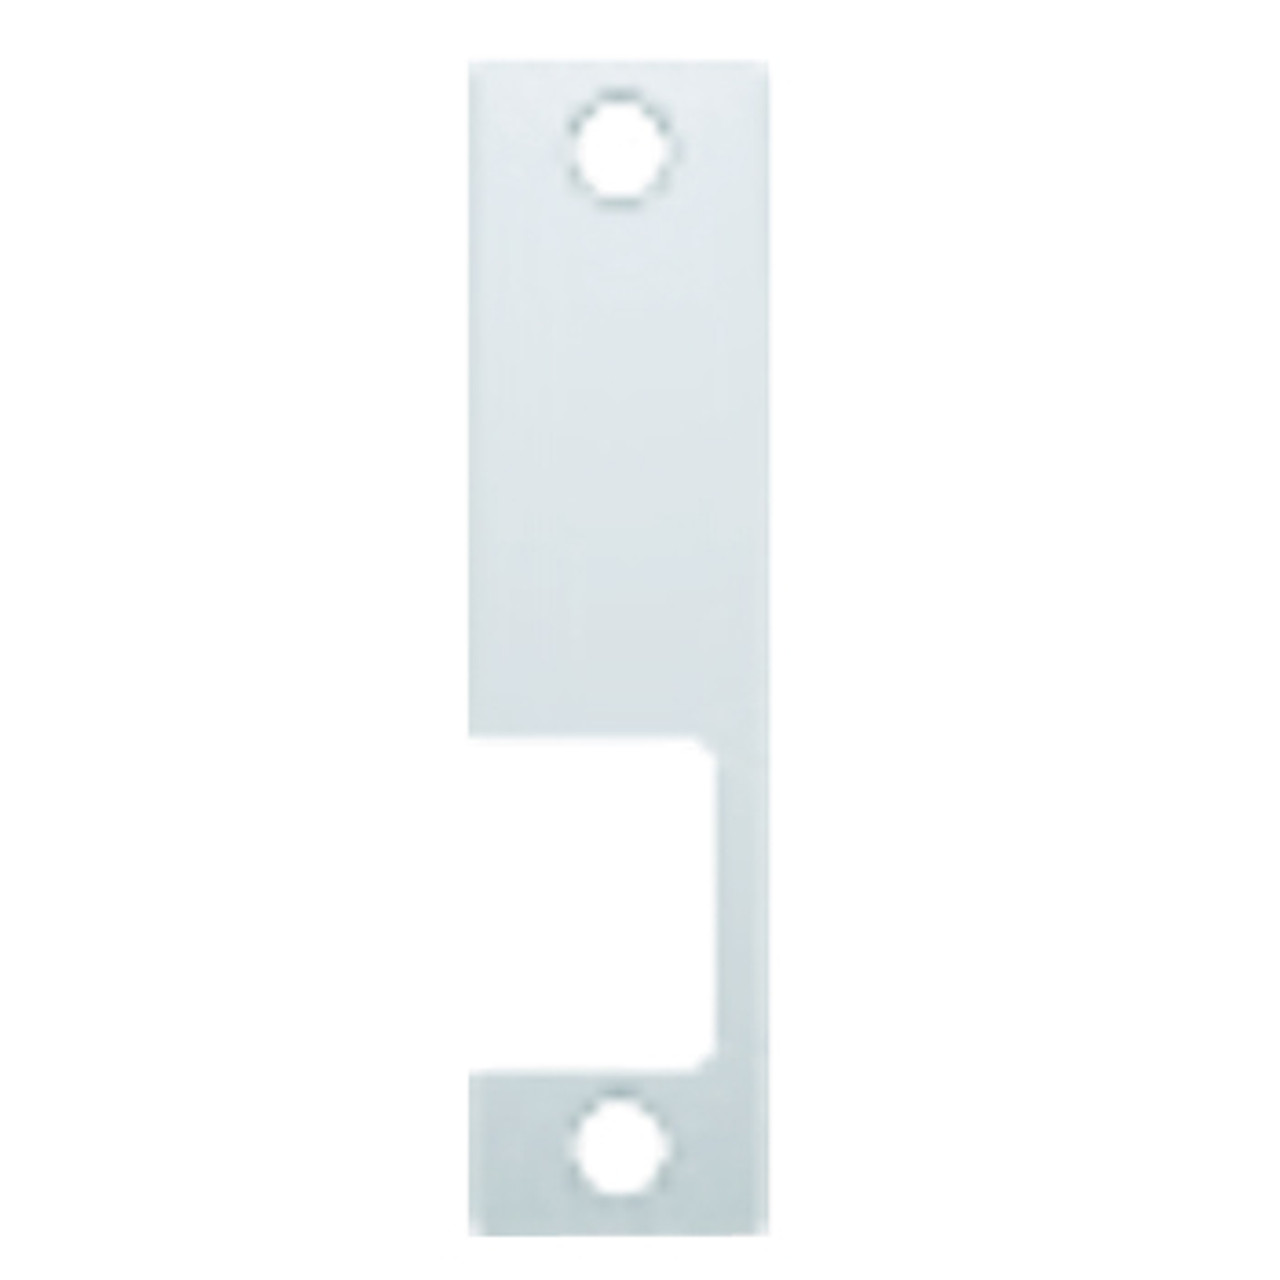 """KD-629 Hes 4-7/8"""" x 1-1/4"""" Faceplate in Bright Stainless Steel Finish"""